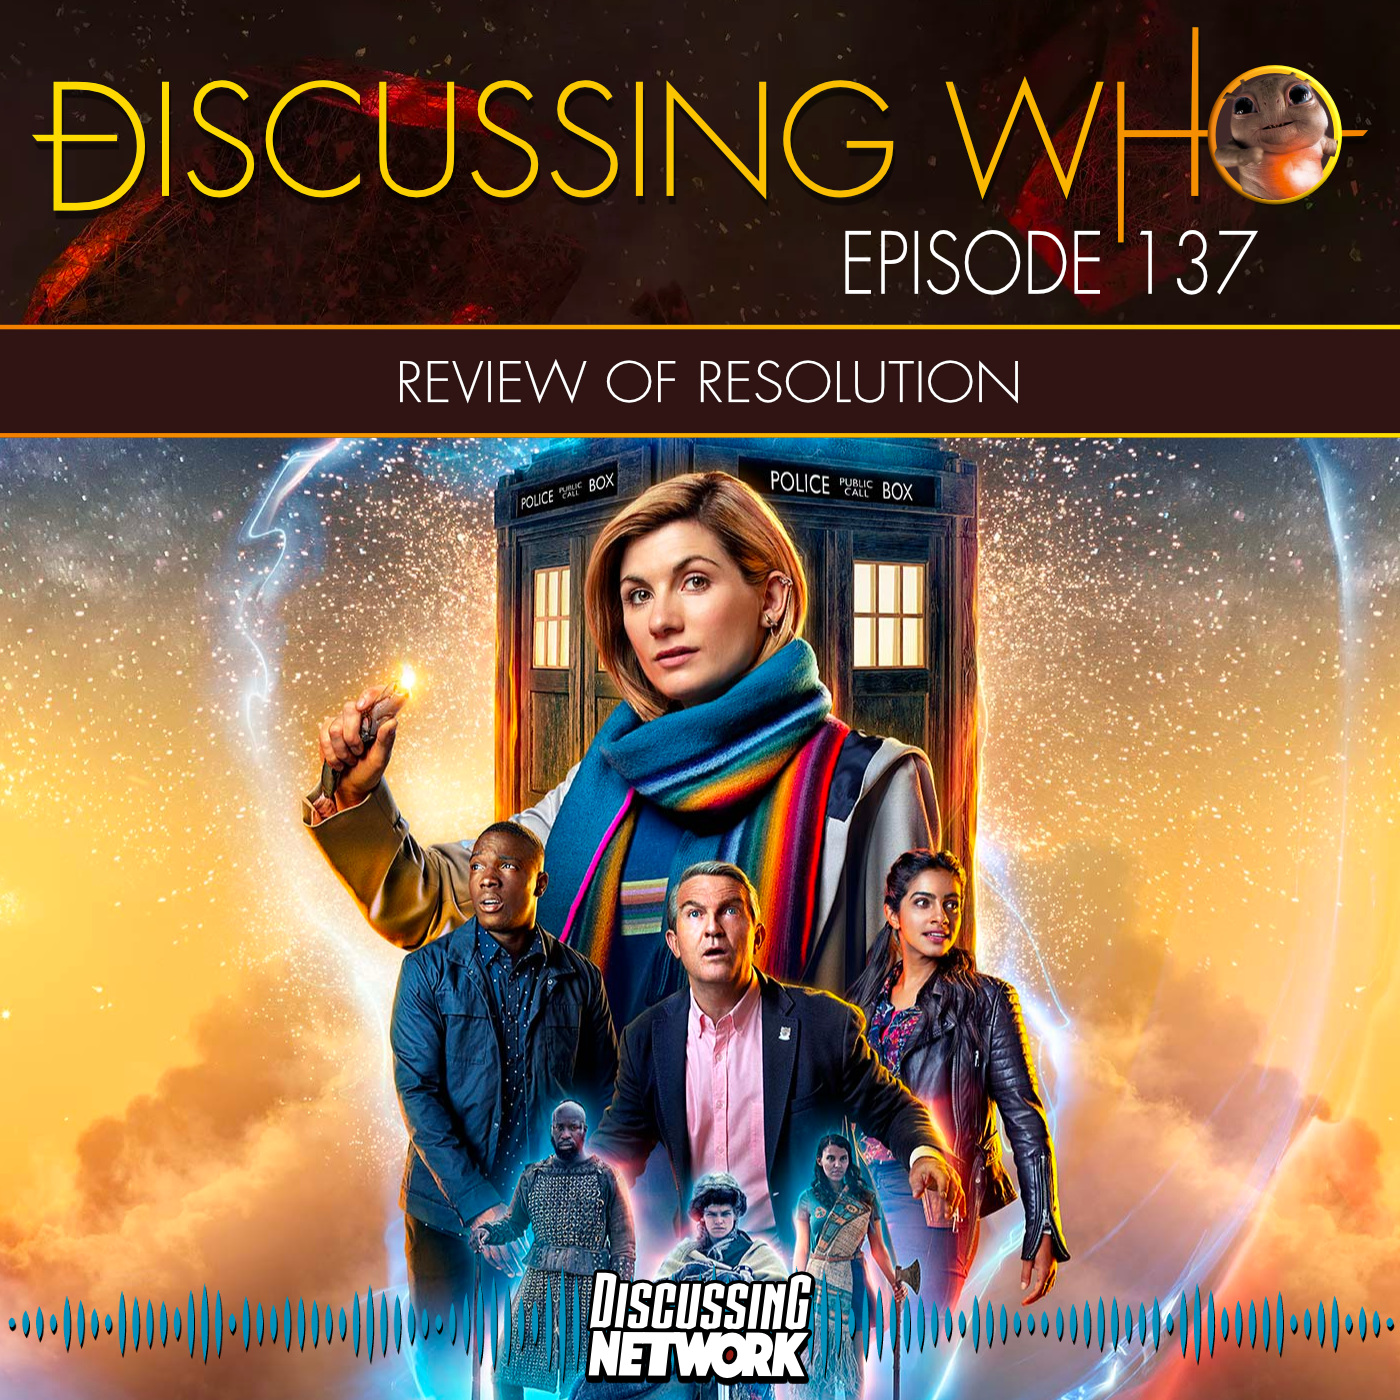 Review of Doctor Who Resolution by Discussing Who Podcast